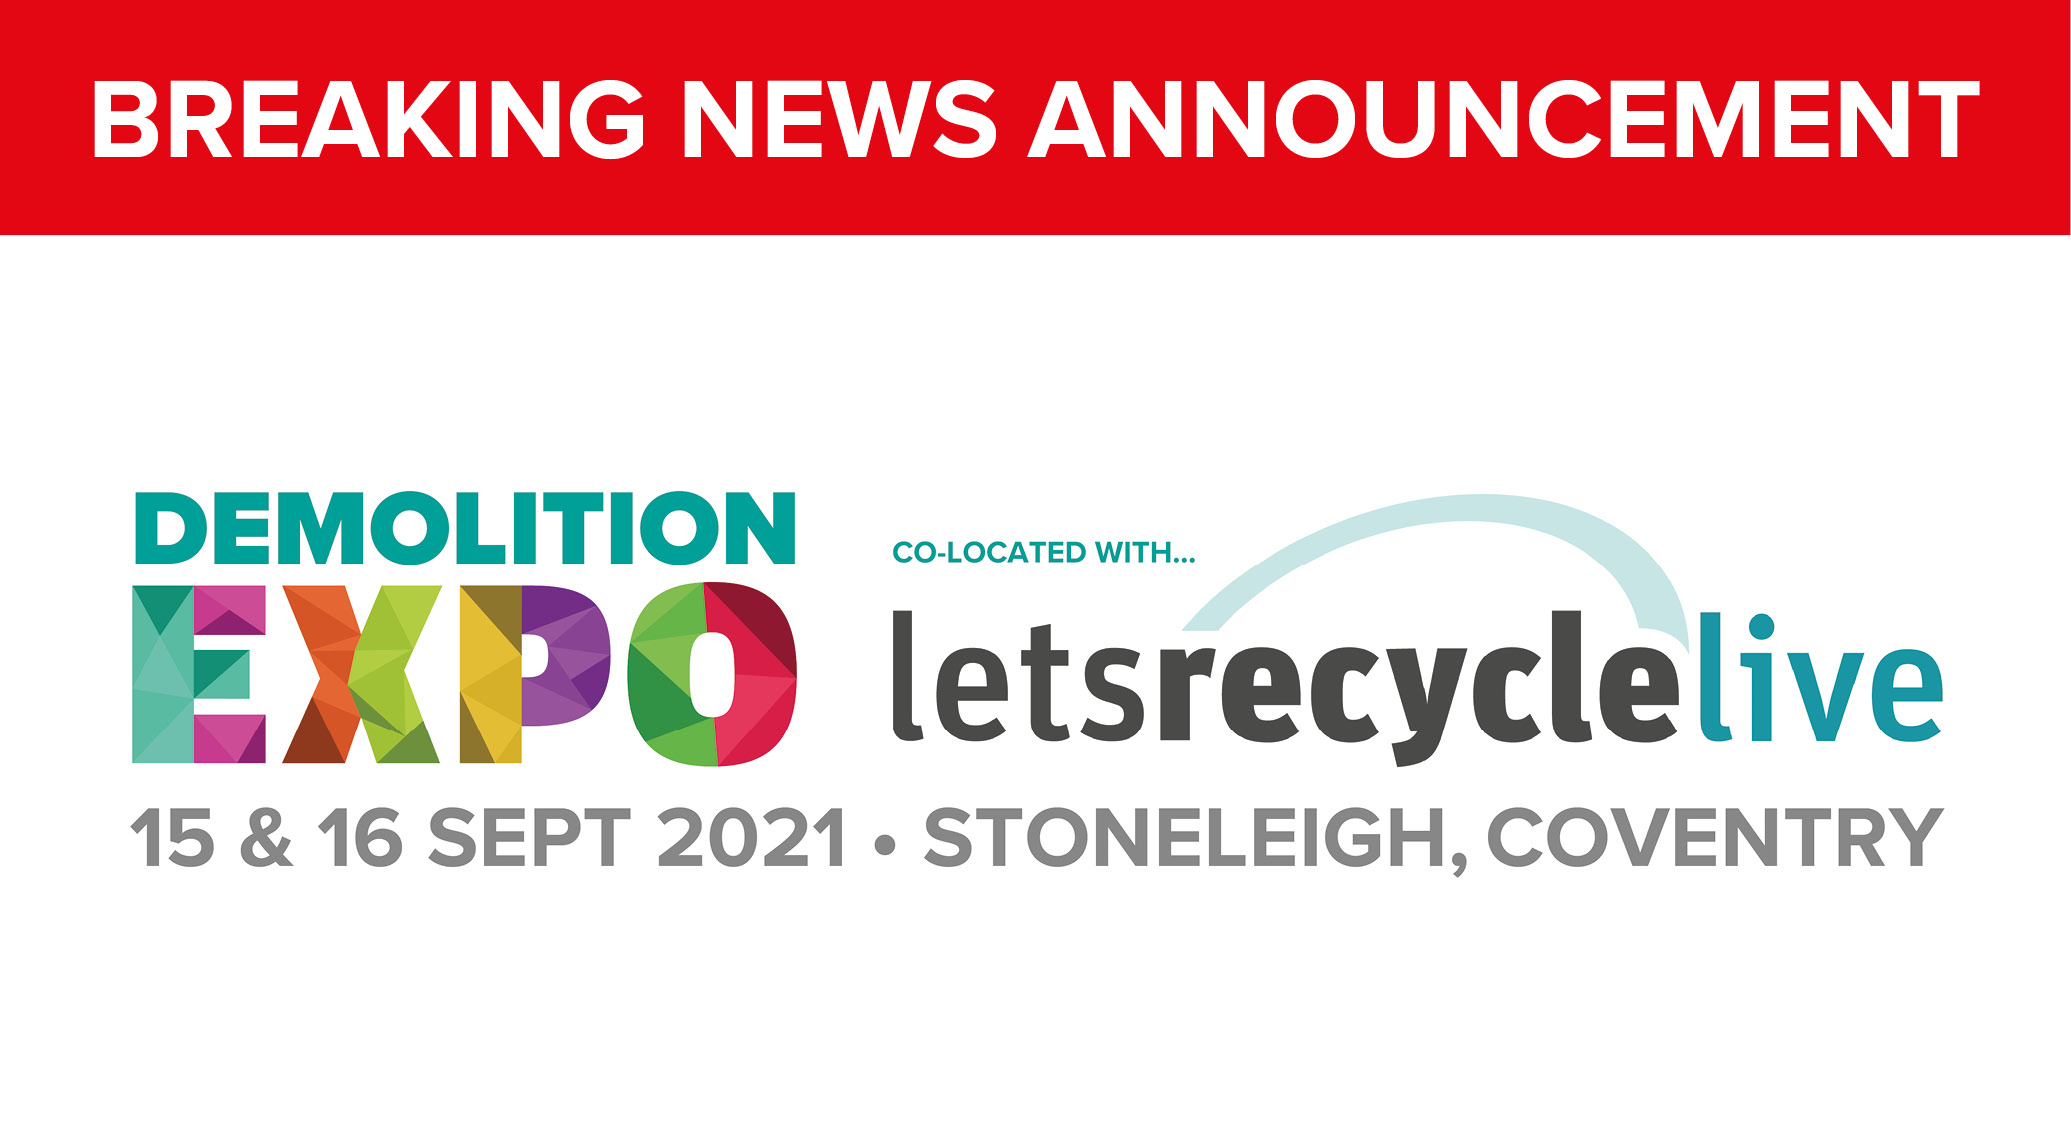 Demo Expo rescheduled to September 2021